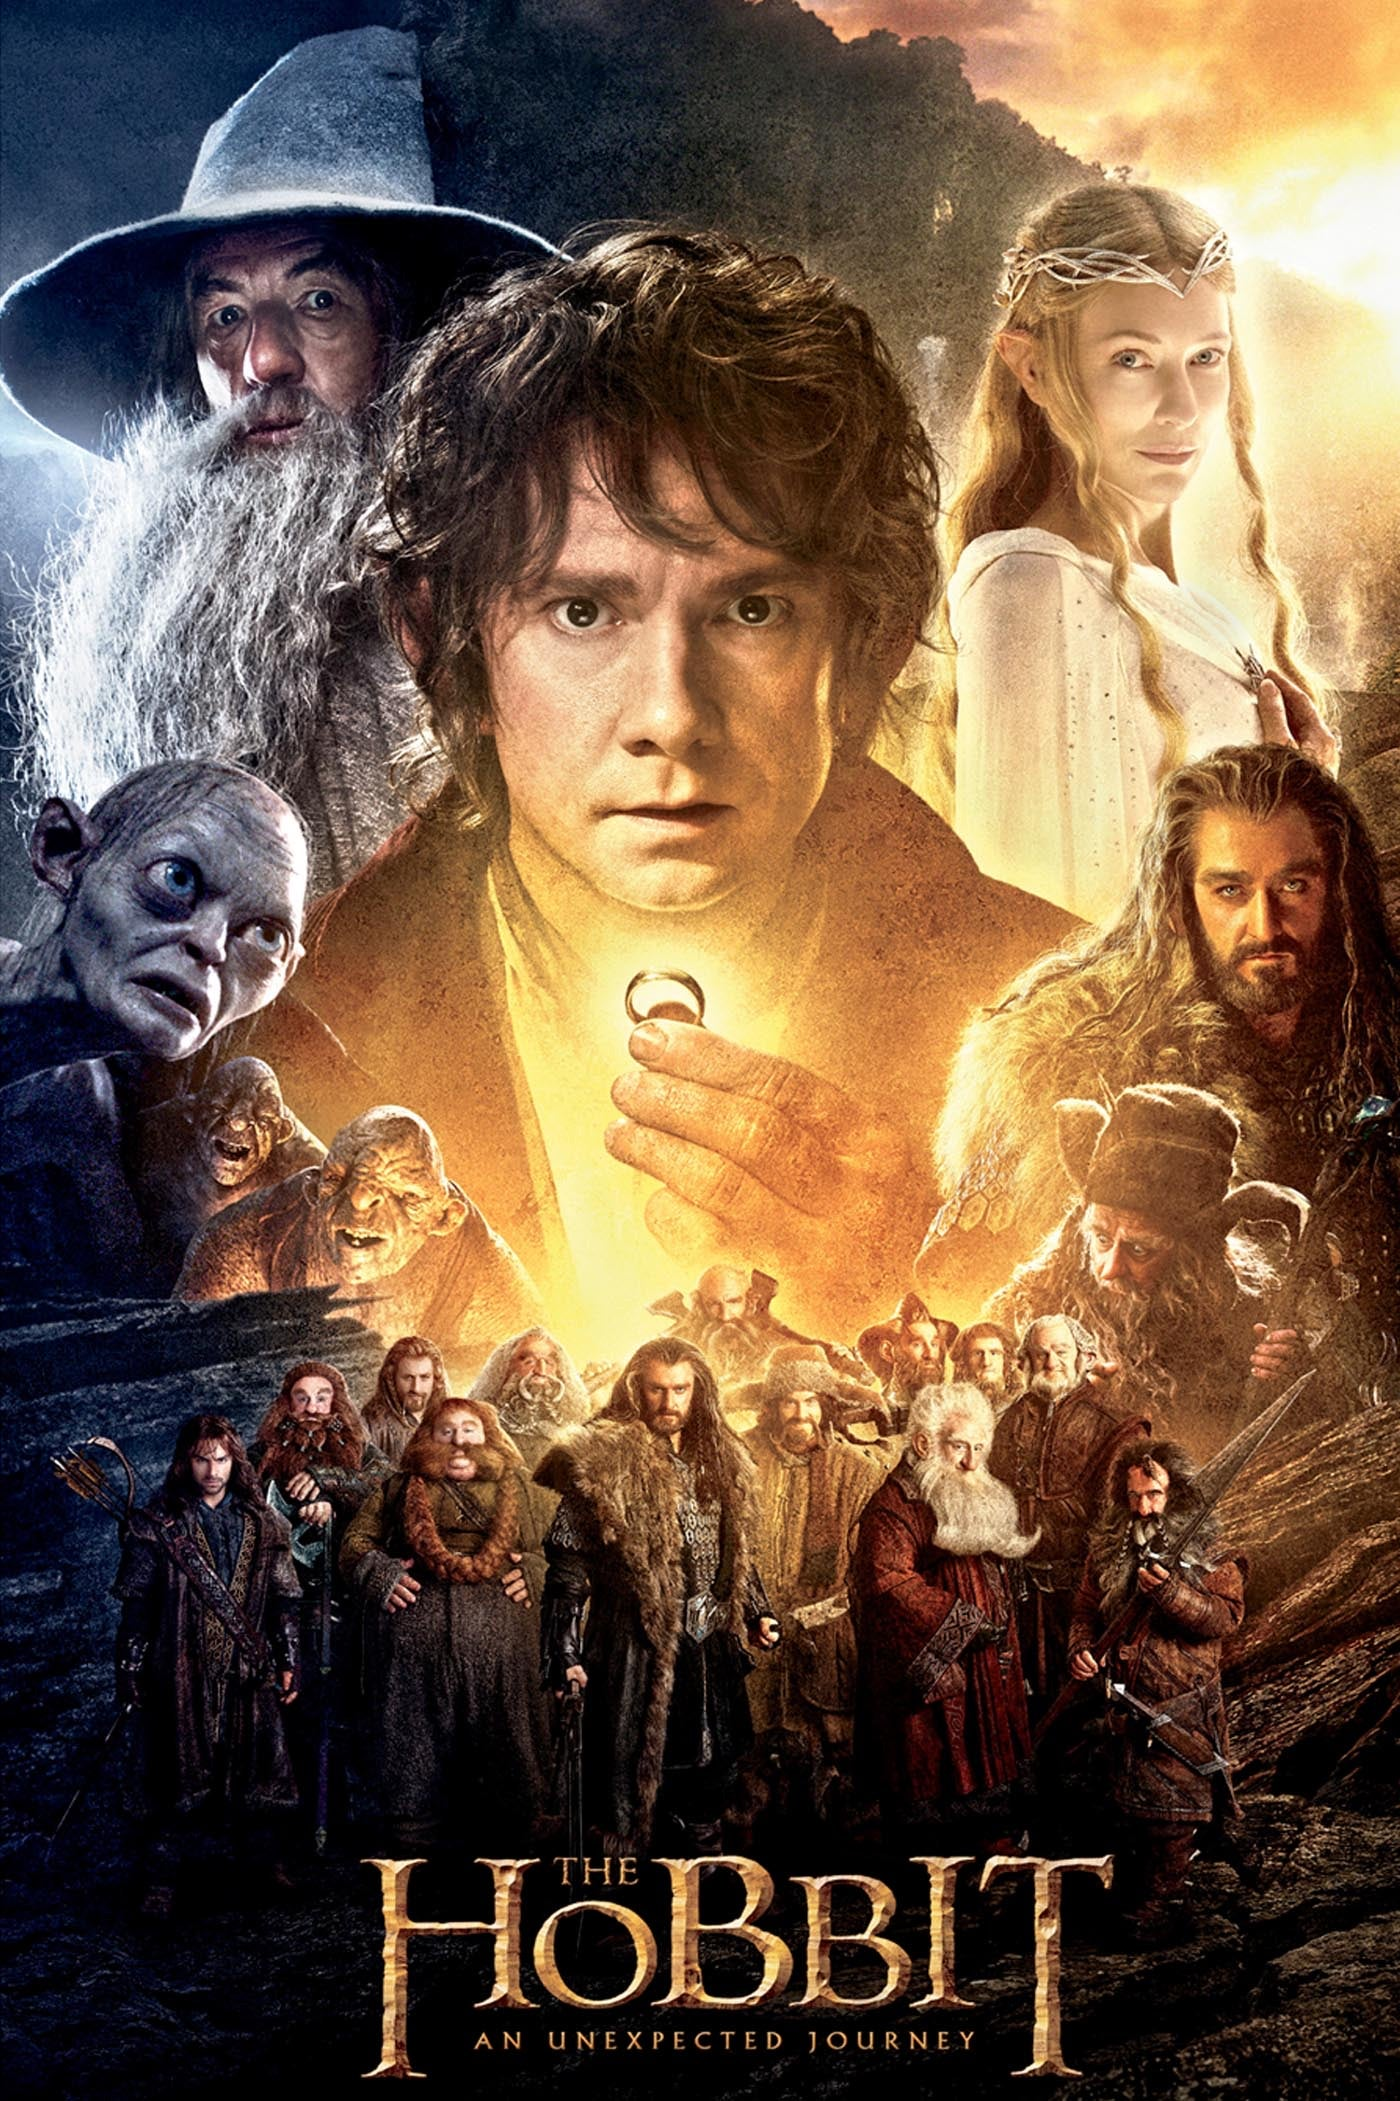 The Hobbit: An Unexpected Journey (2012) Vudu or Movies Anywhere HD code